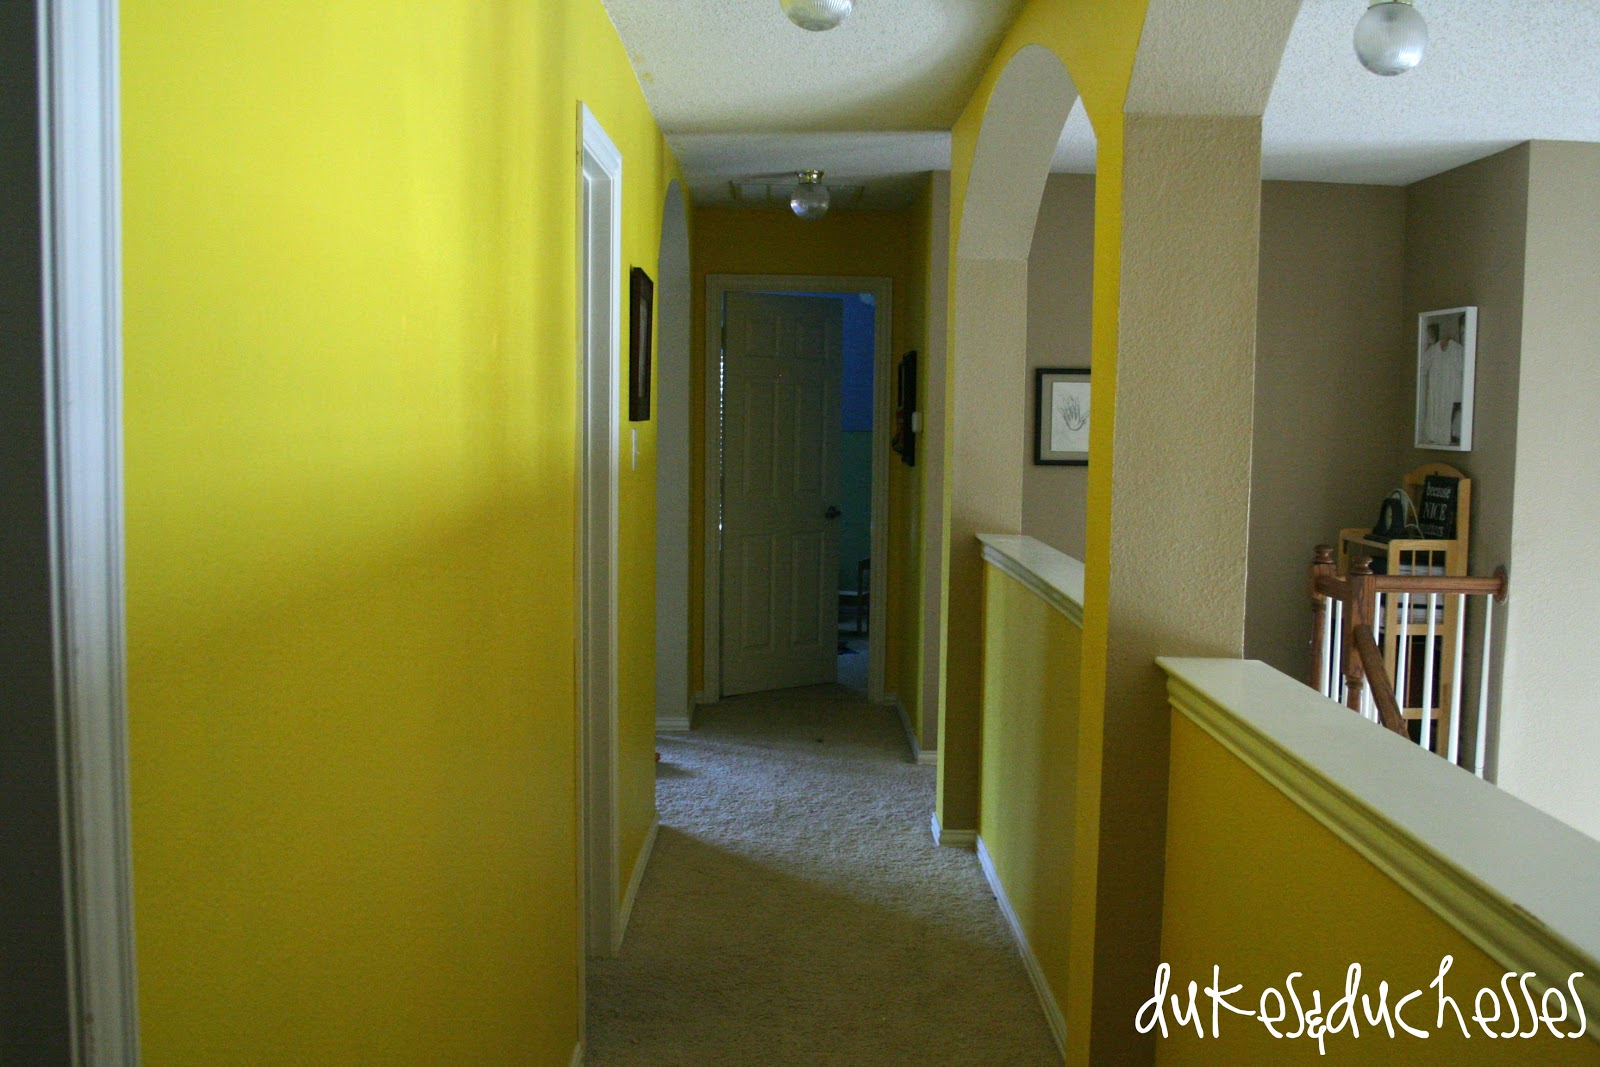 A Painted Hallway and Tips on Paint Coverage - Dukes and Duchesses